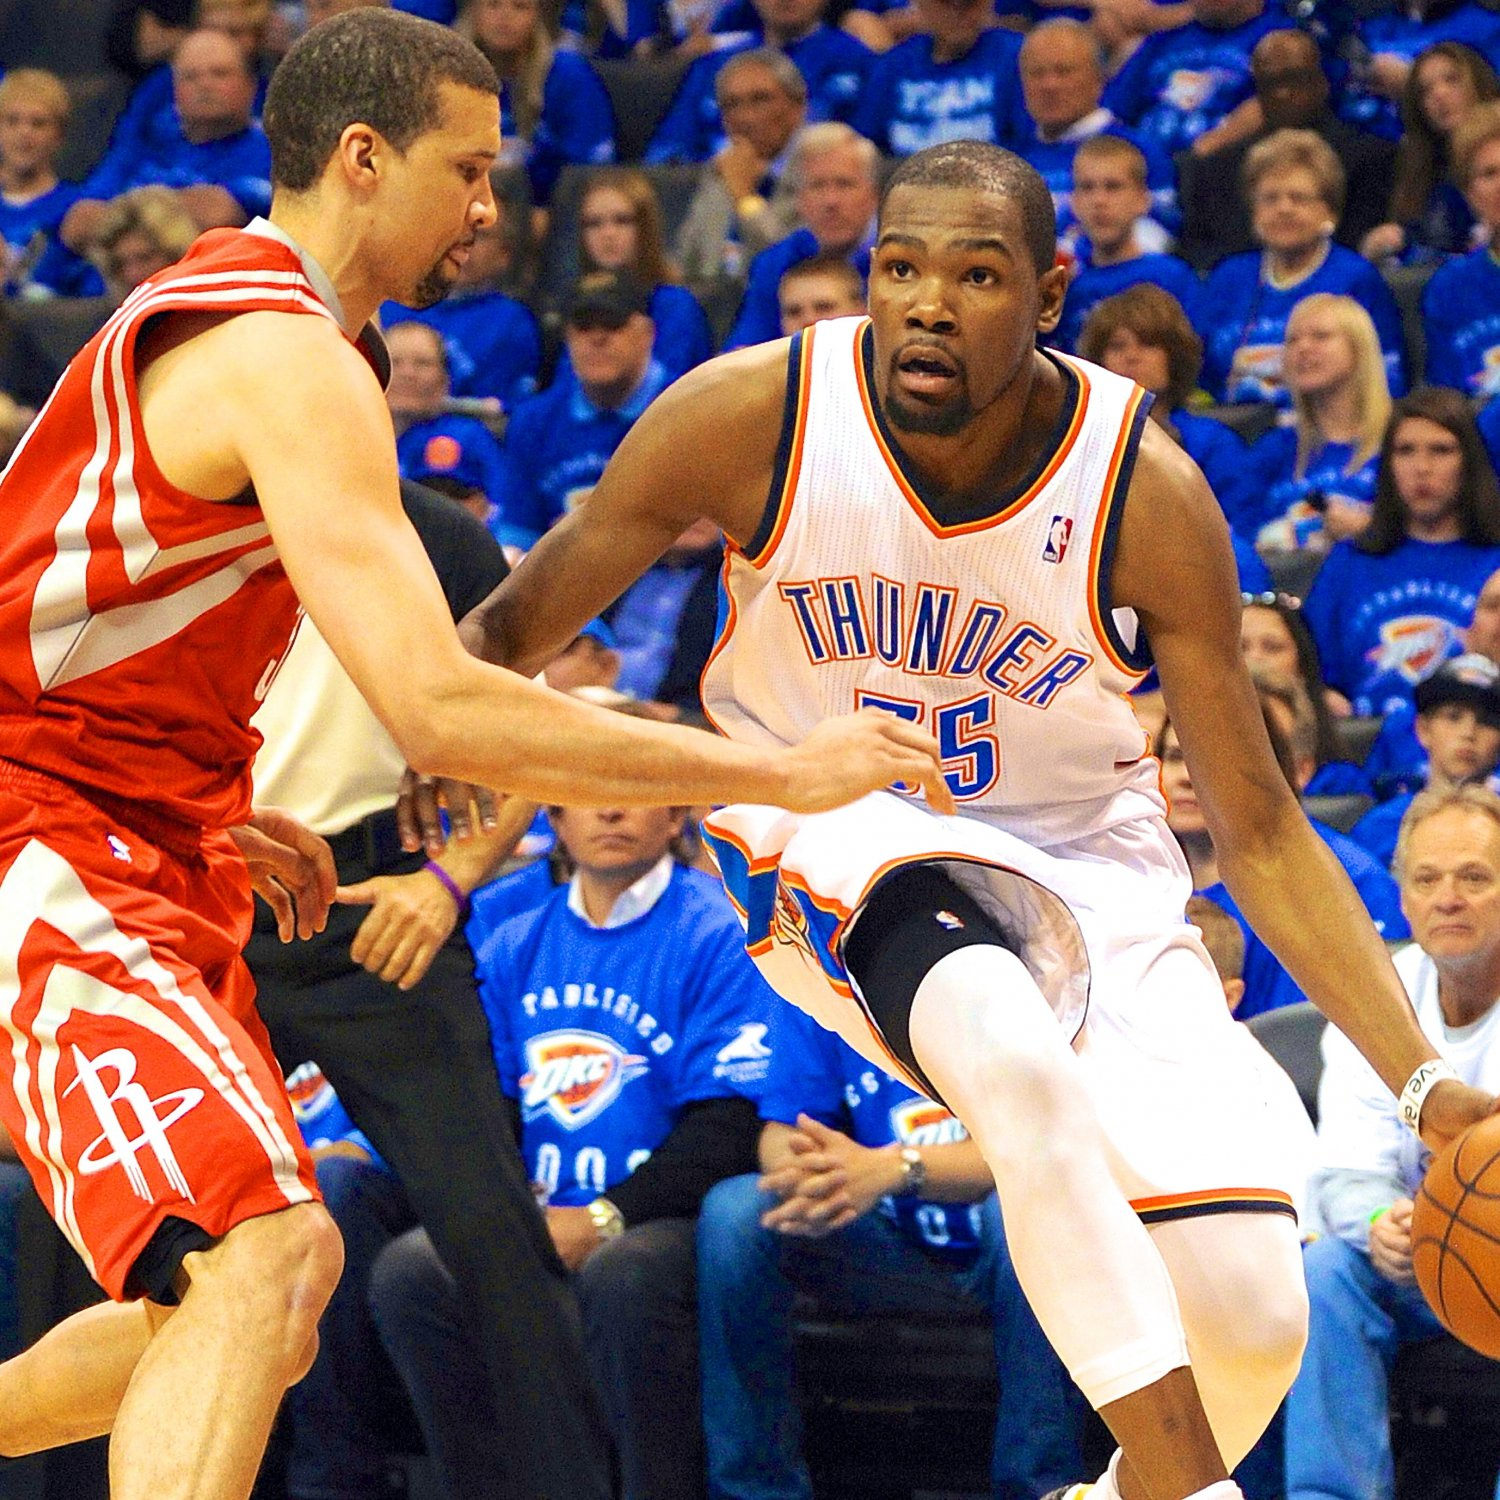 Houston Rockets Vs Okc: OKC Thunder Vs. Houston Rockets: Game 4 Preview, Schedule